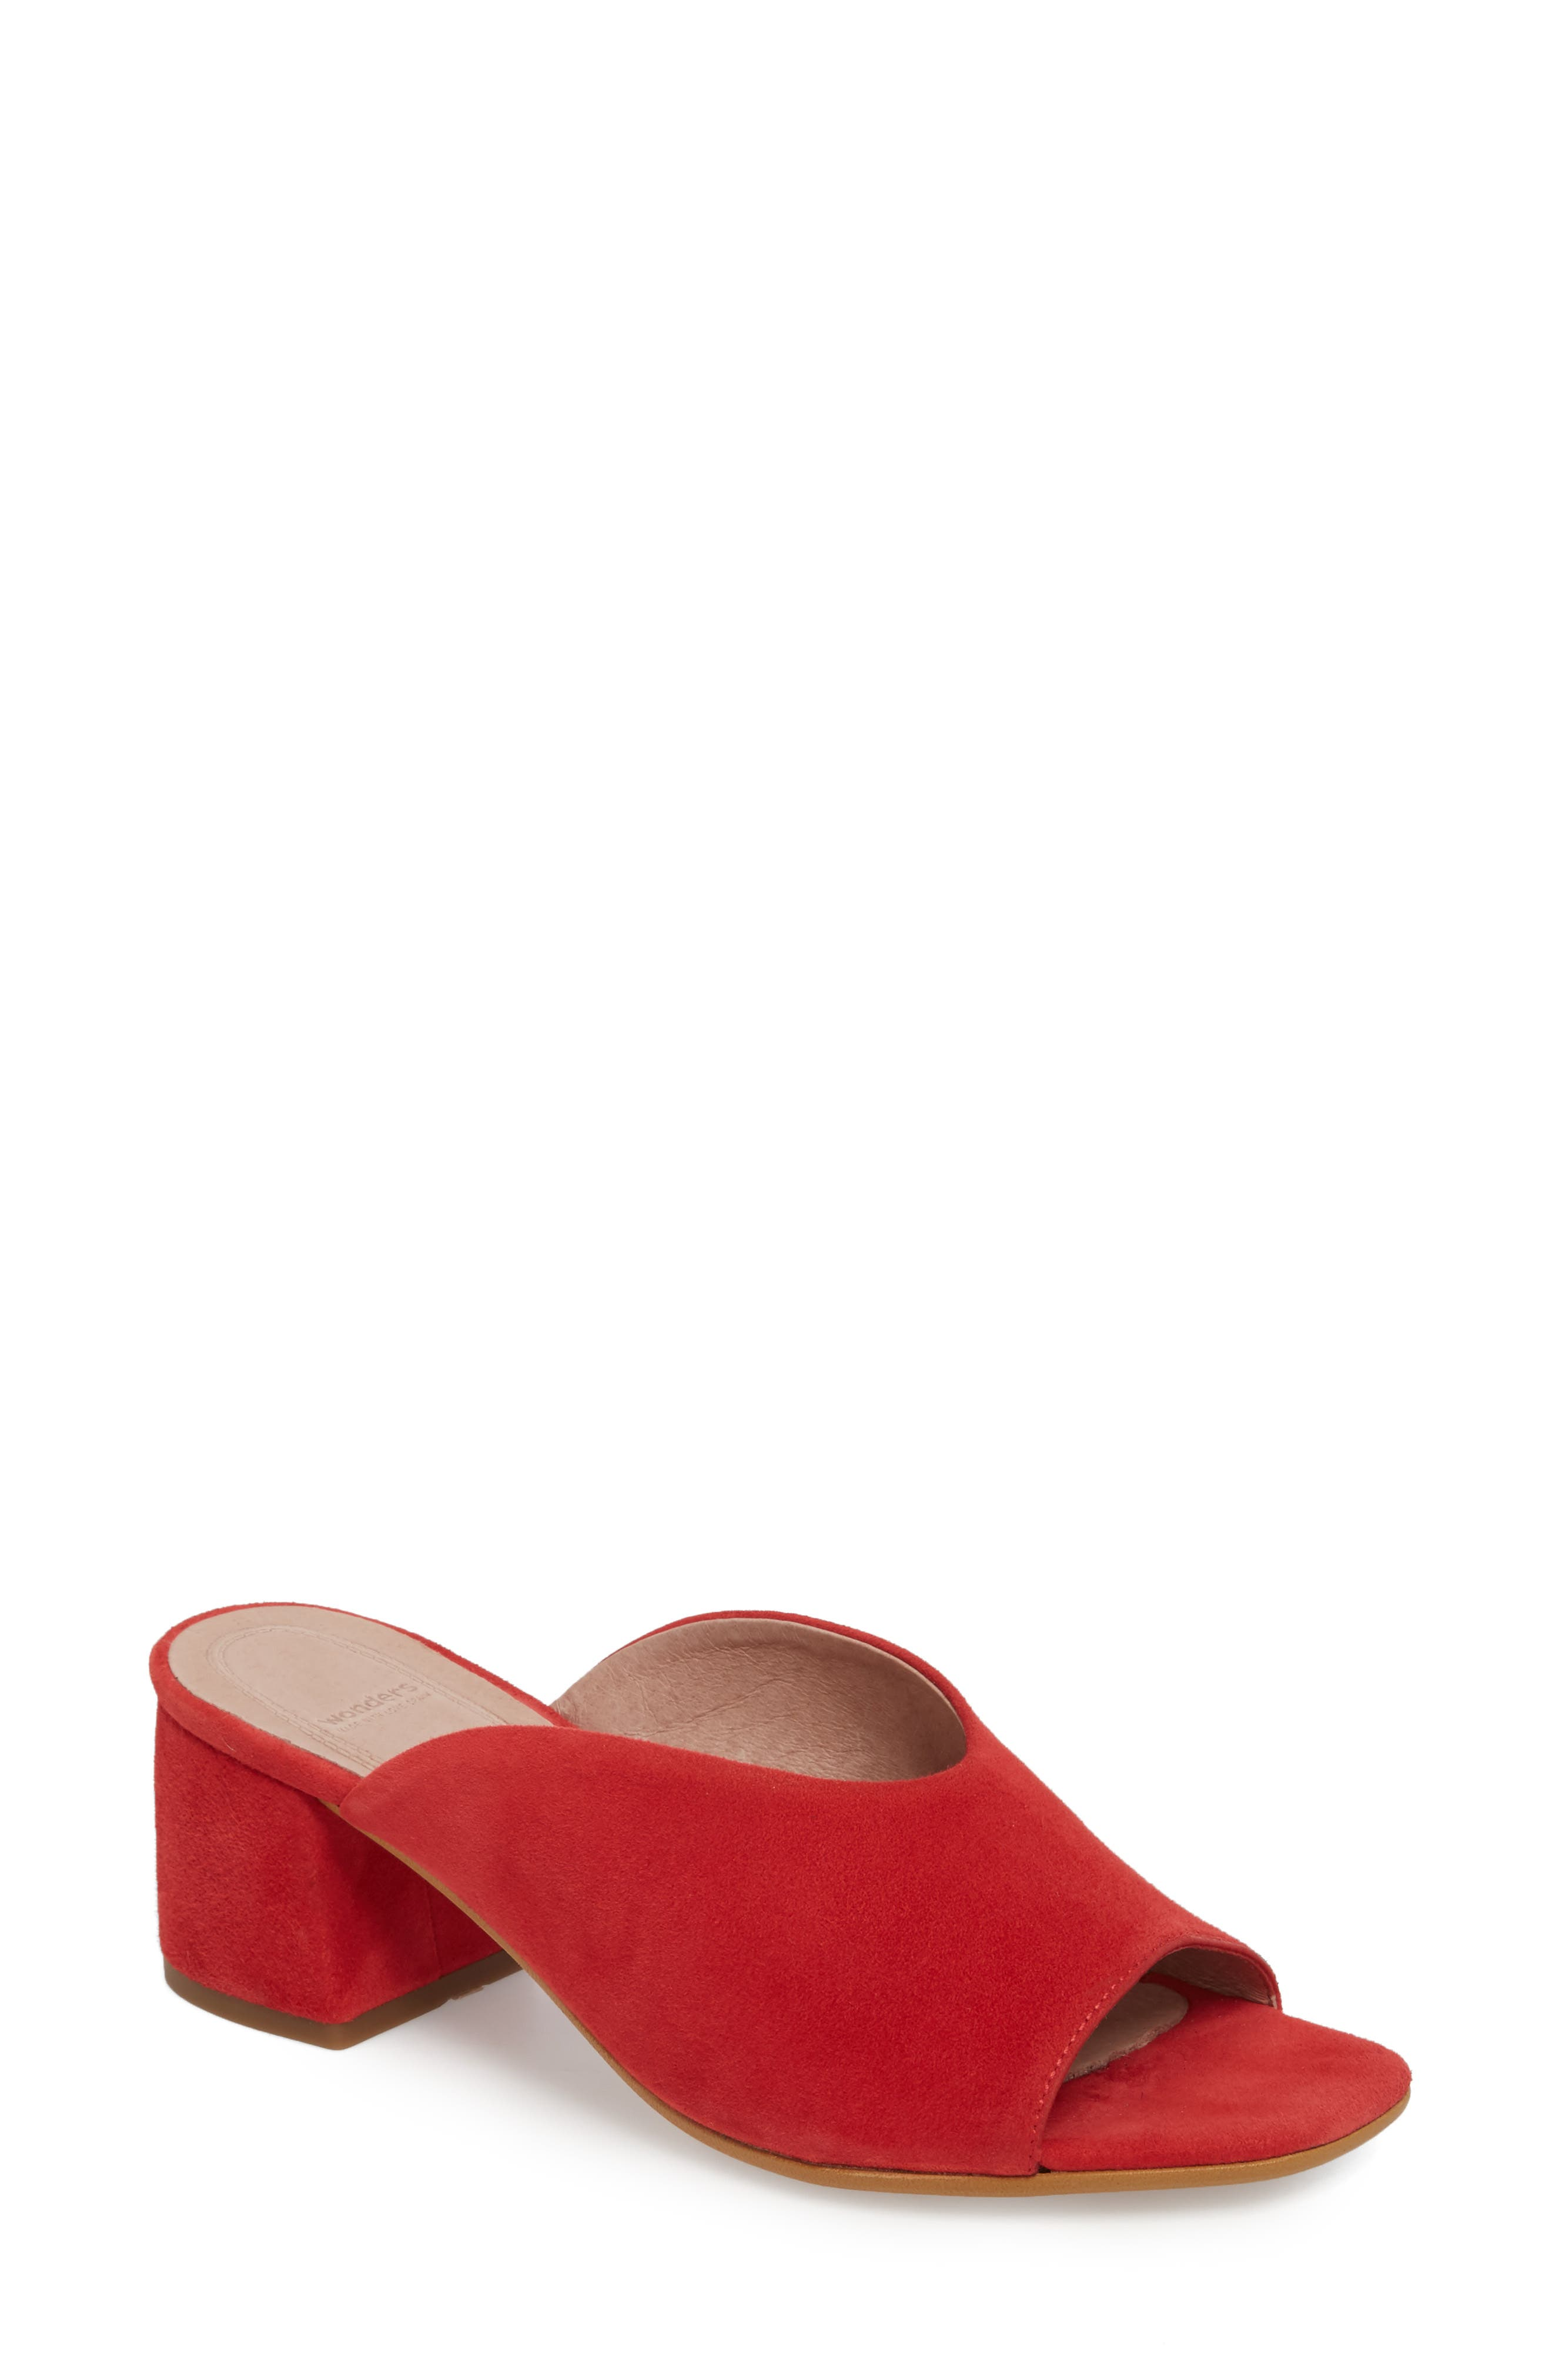 F-6127 Mule,                             Main thumbnail 1, color,                             Red Suede